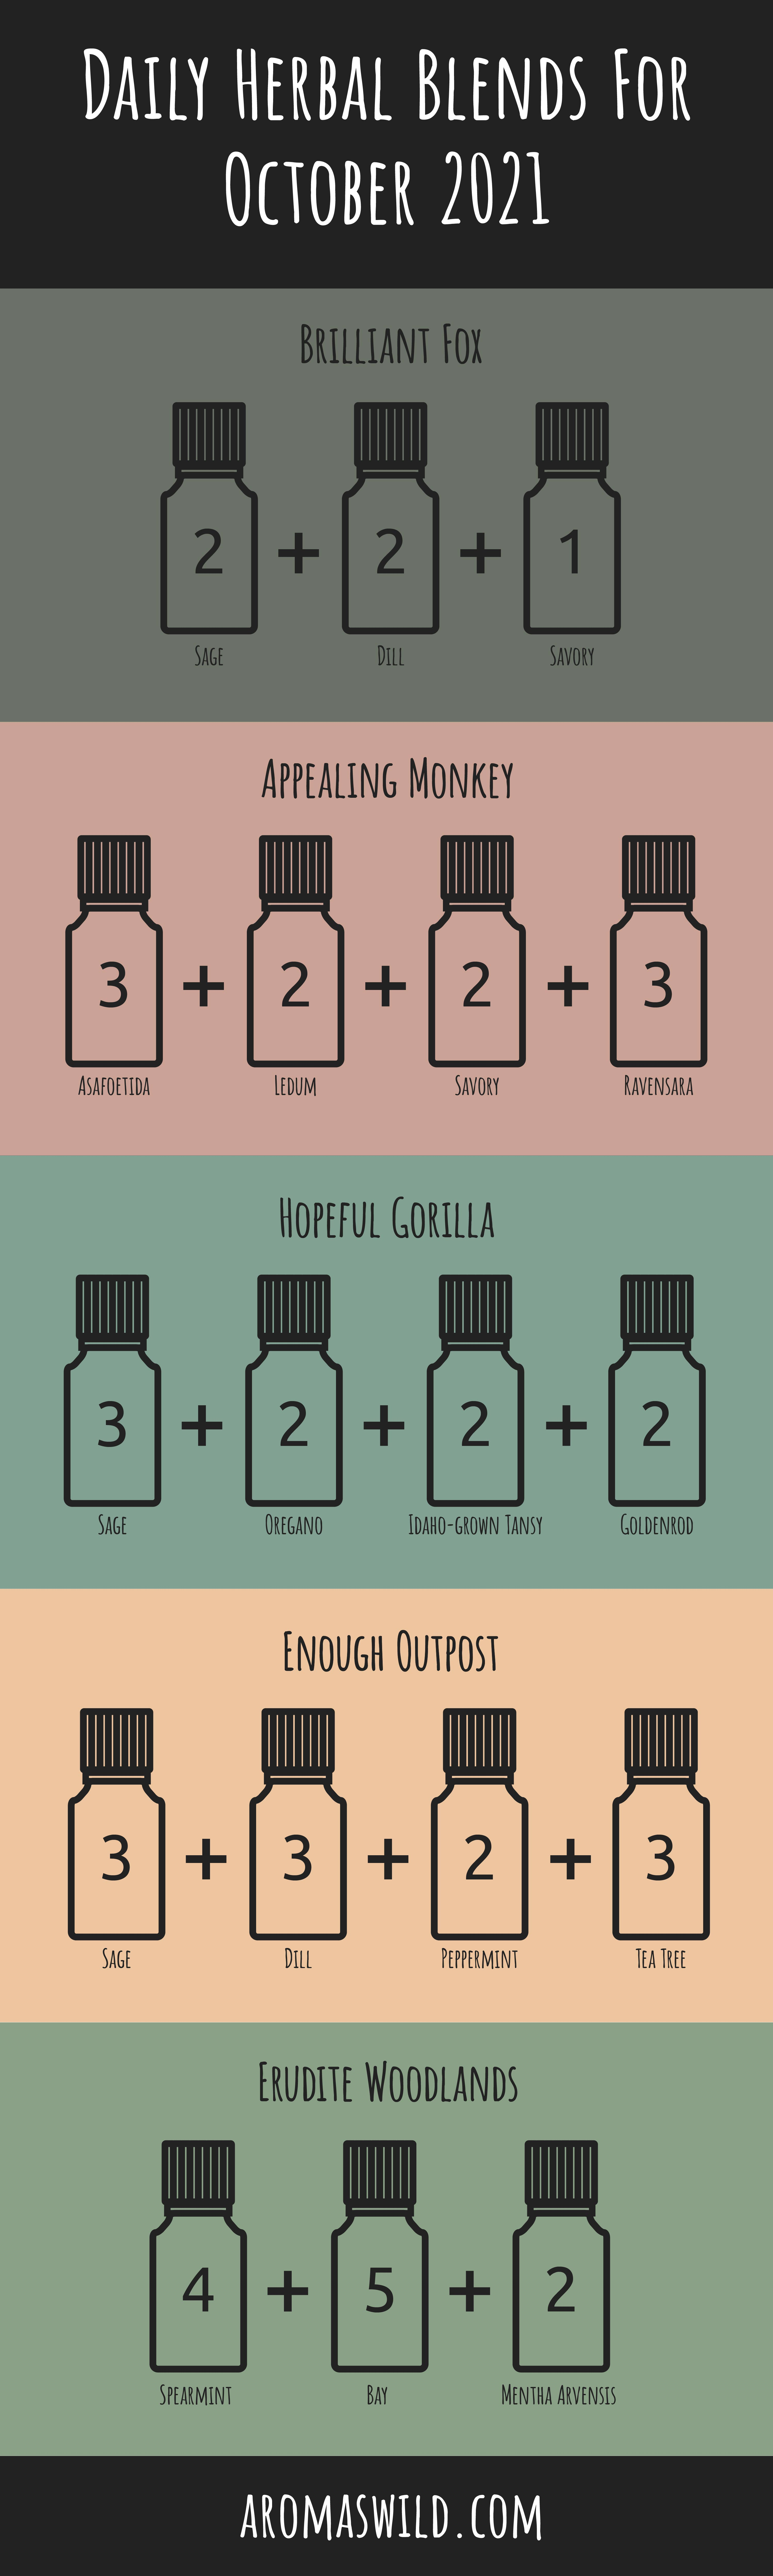 Herby Blends To Use In Aromatherapy – Daily Herbal Blends For 15 October 2021